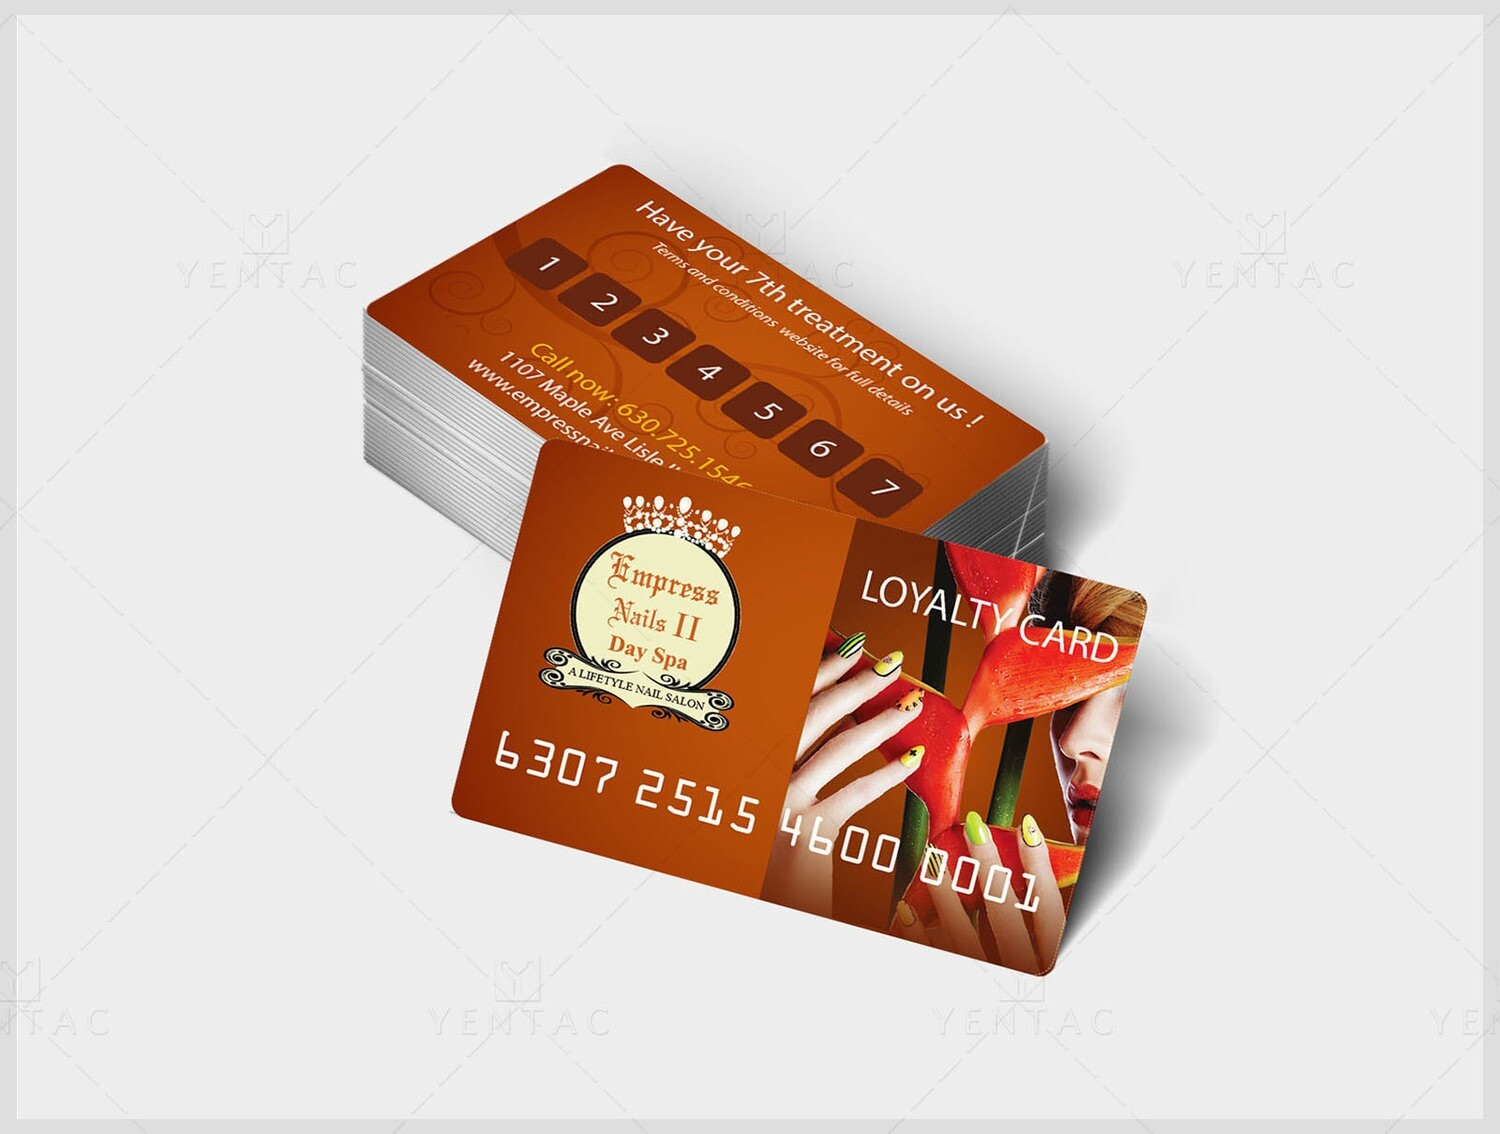 06 - Plastic Loyalty Card - Empress Nails Spa #4007 Salon